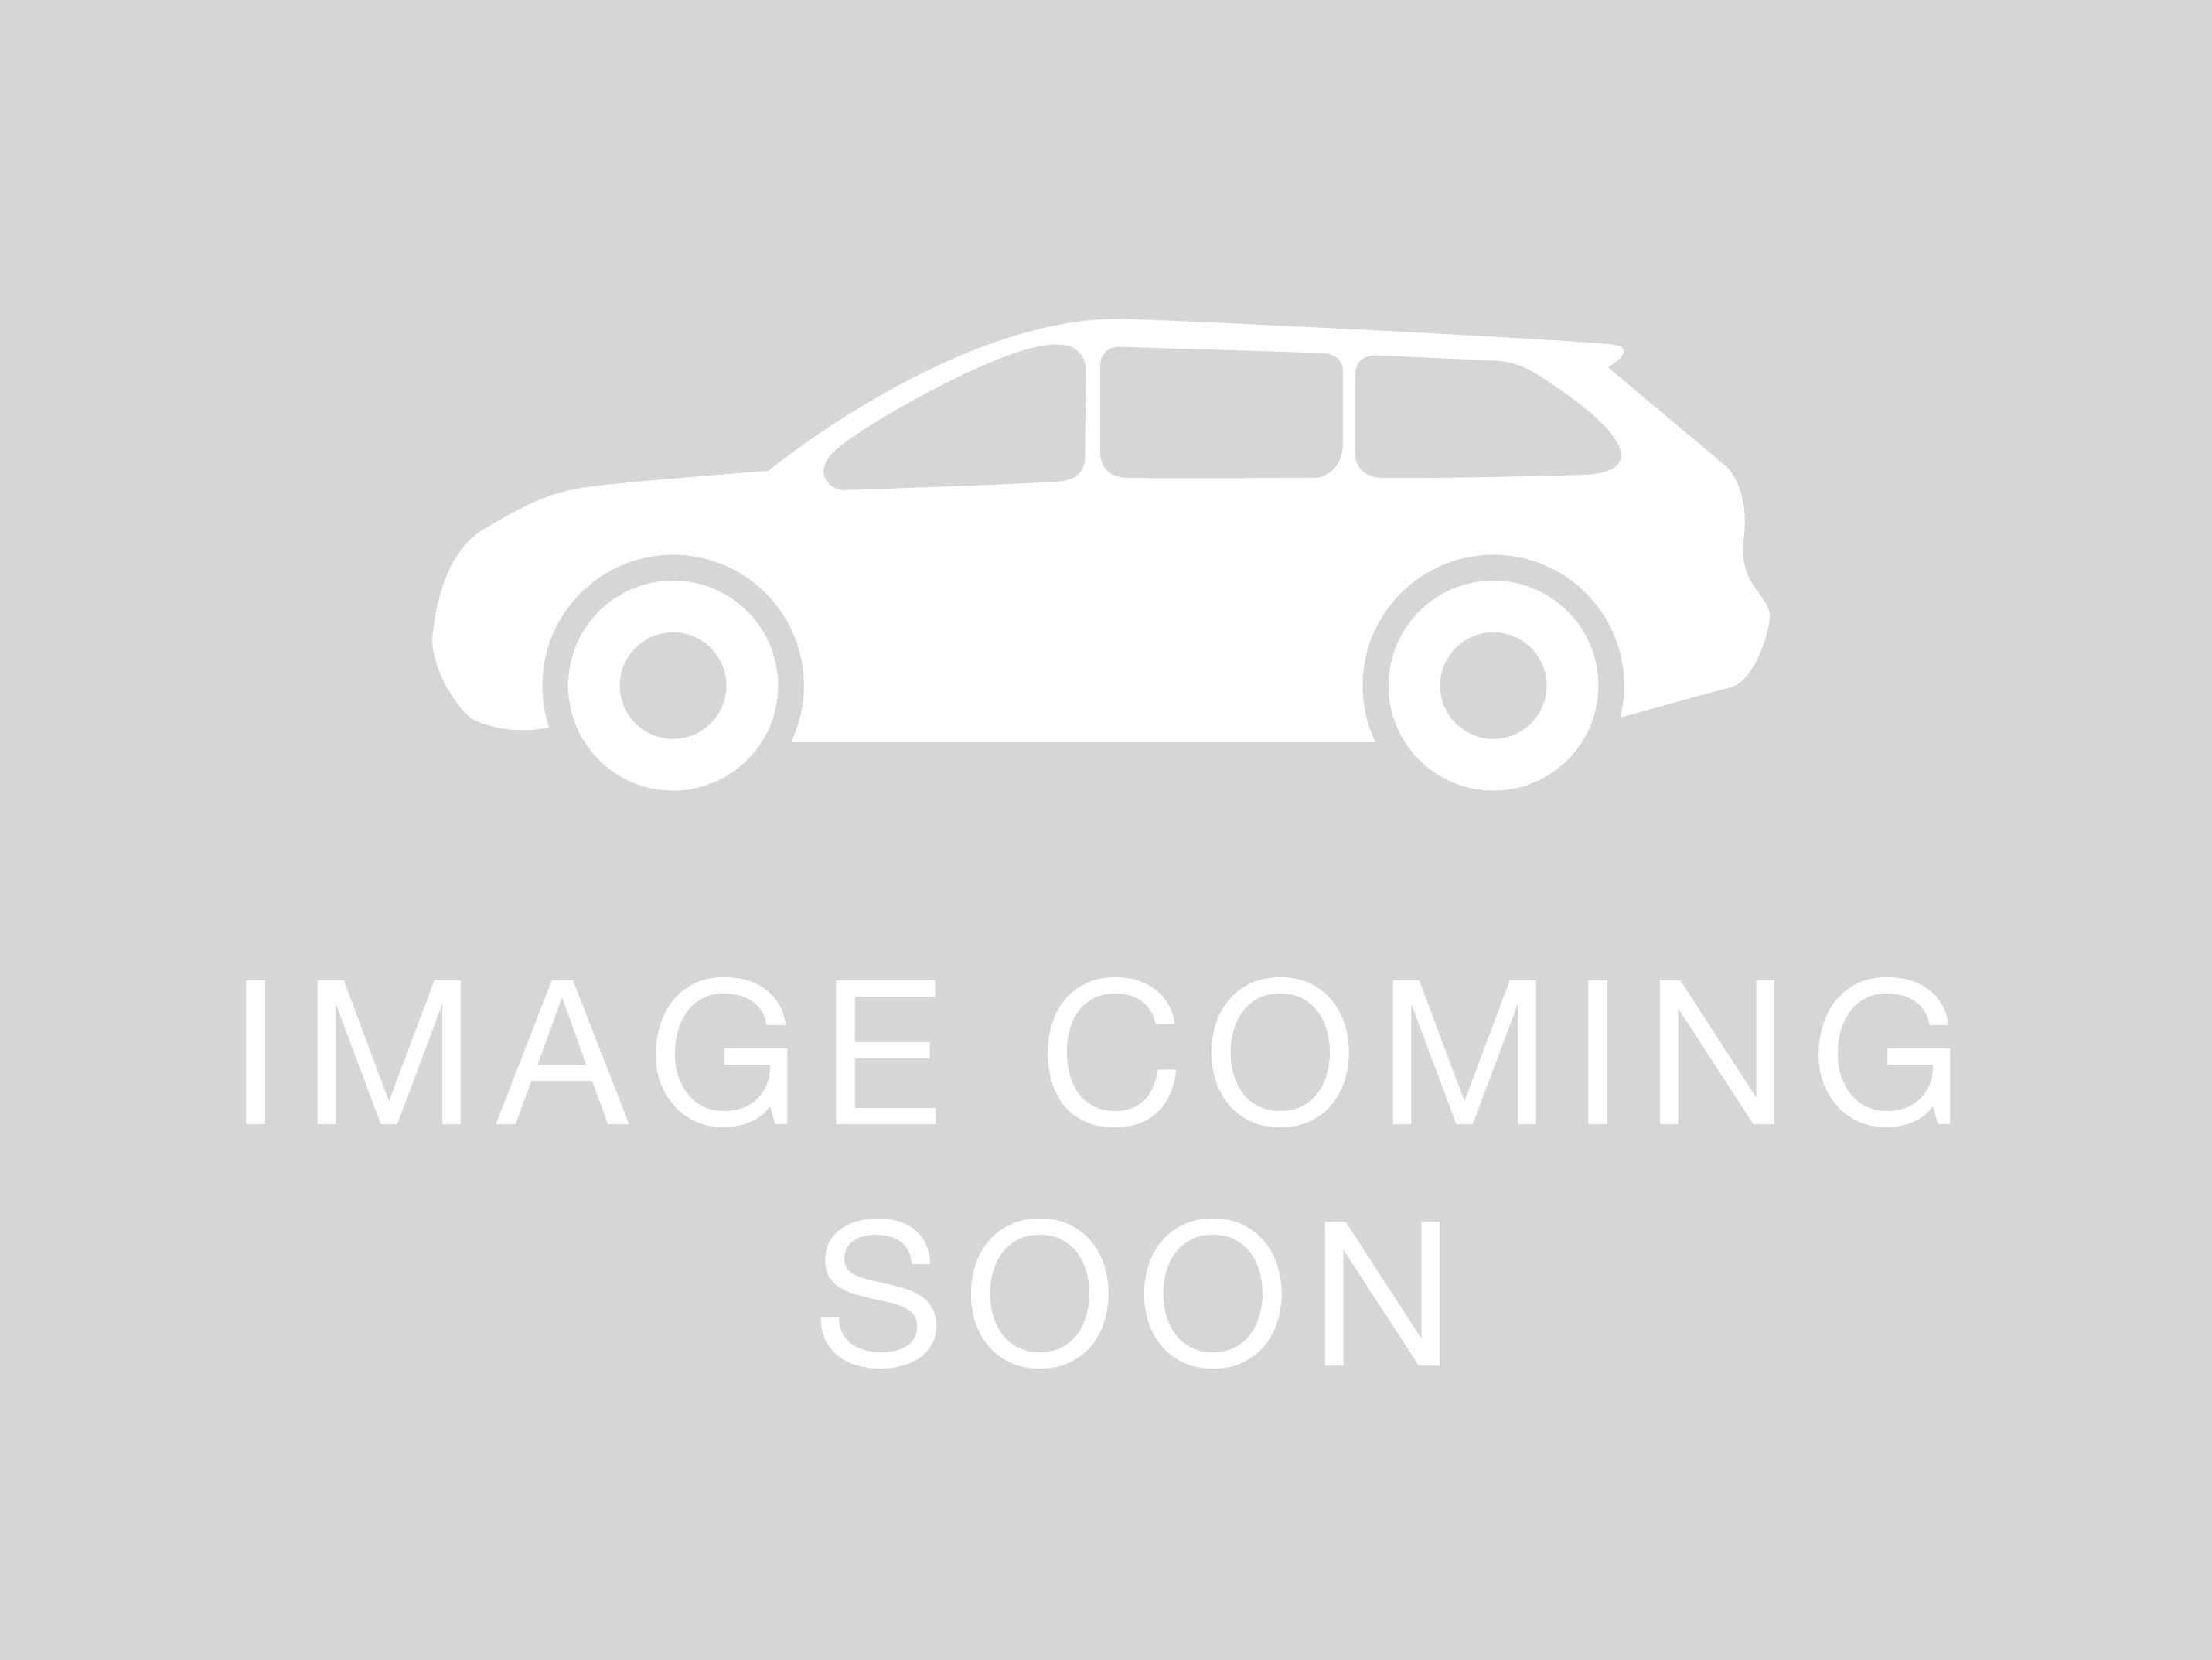 Used Hyundai 2018 Kona 1 6l Turbo Awd Hyundai Nz